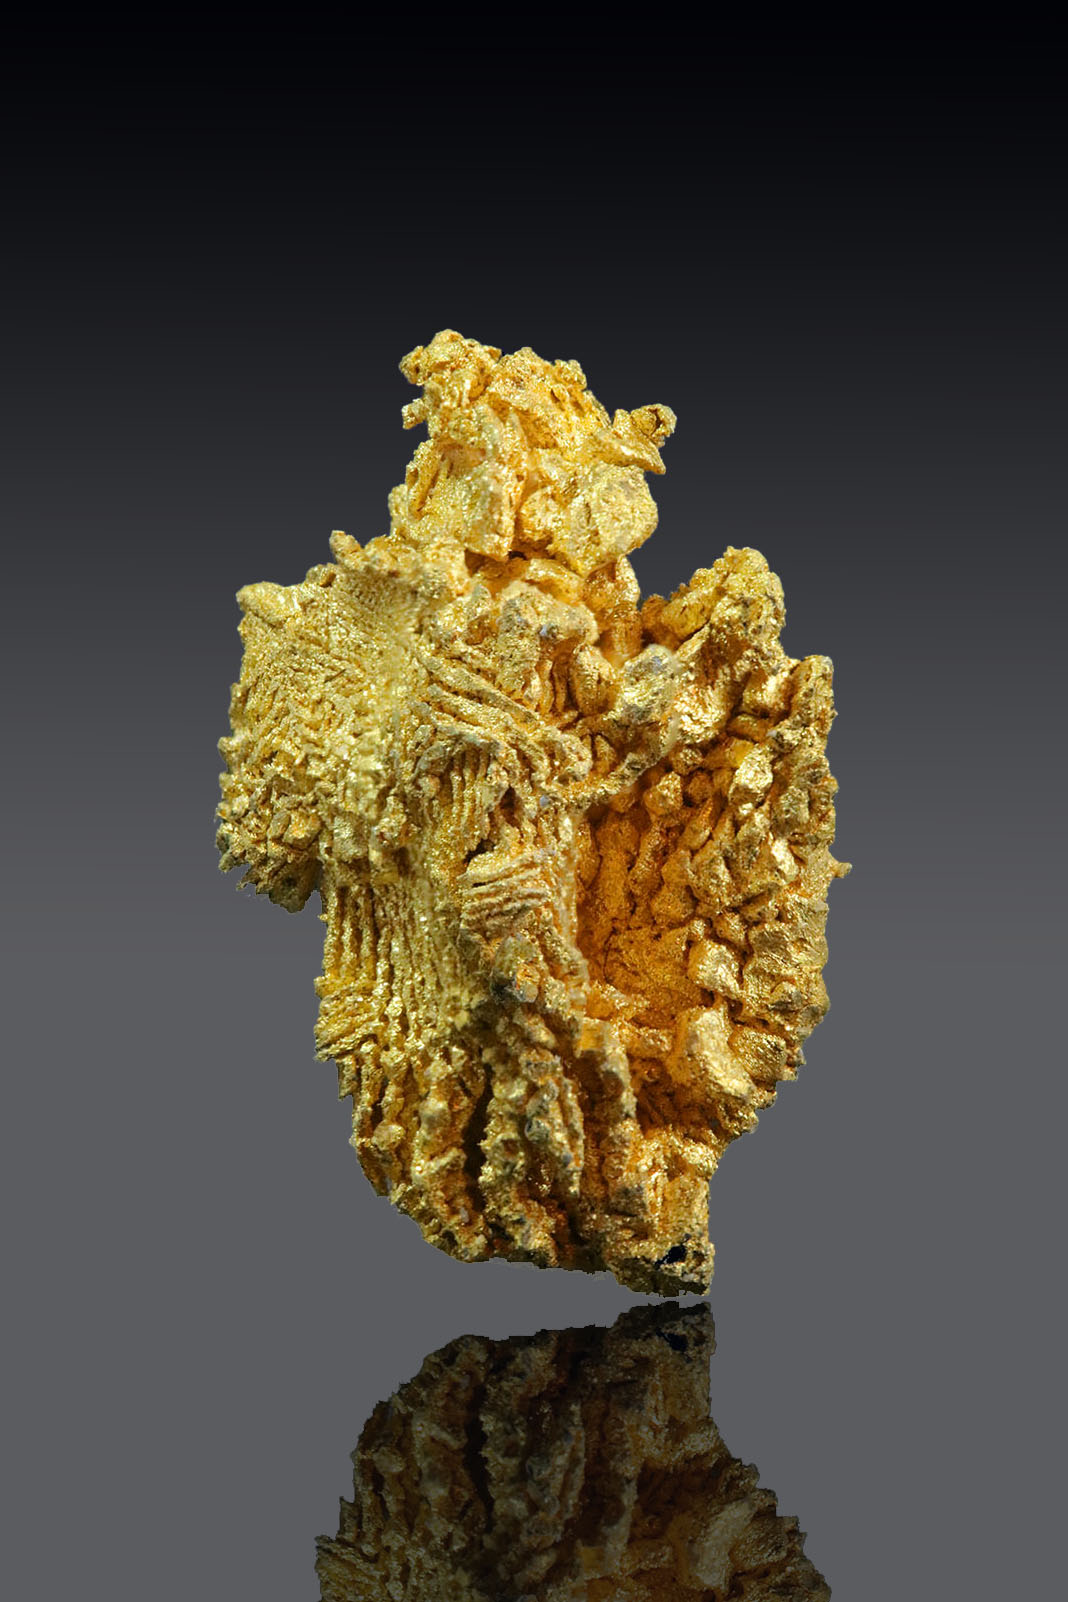 Brilliant Striated Gold Crystal - Round Mountian Gold Mine